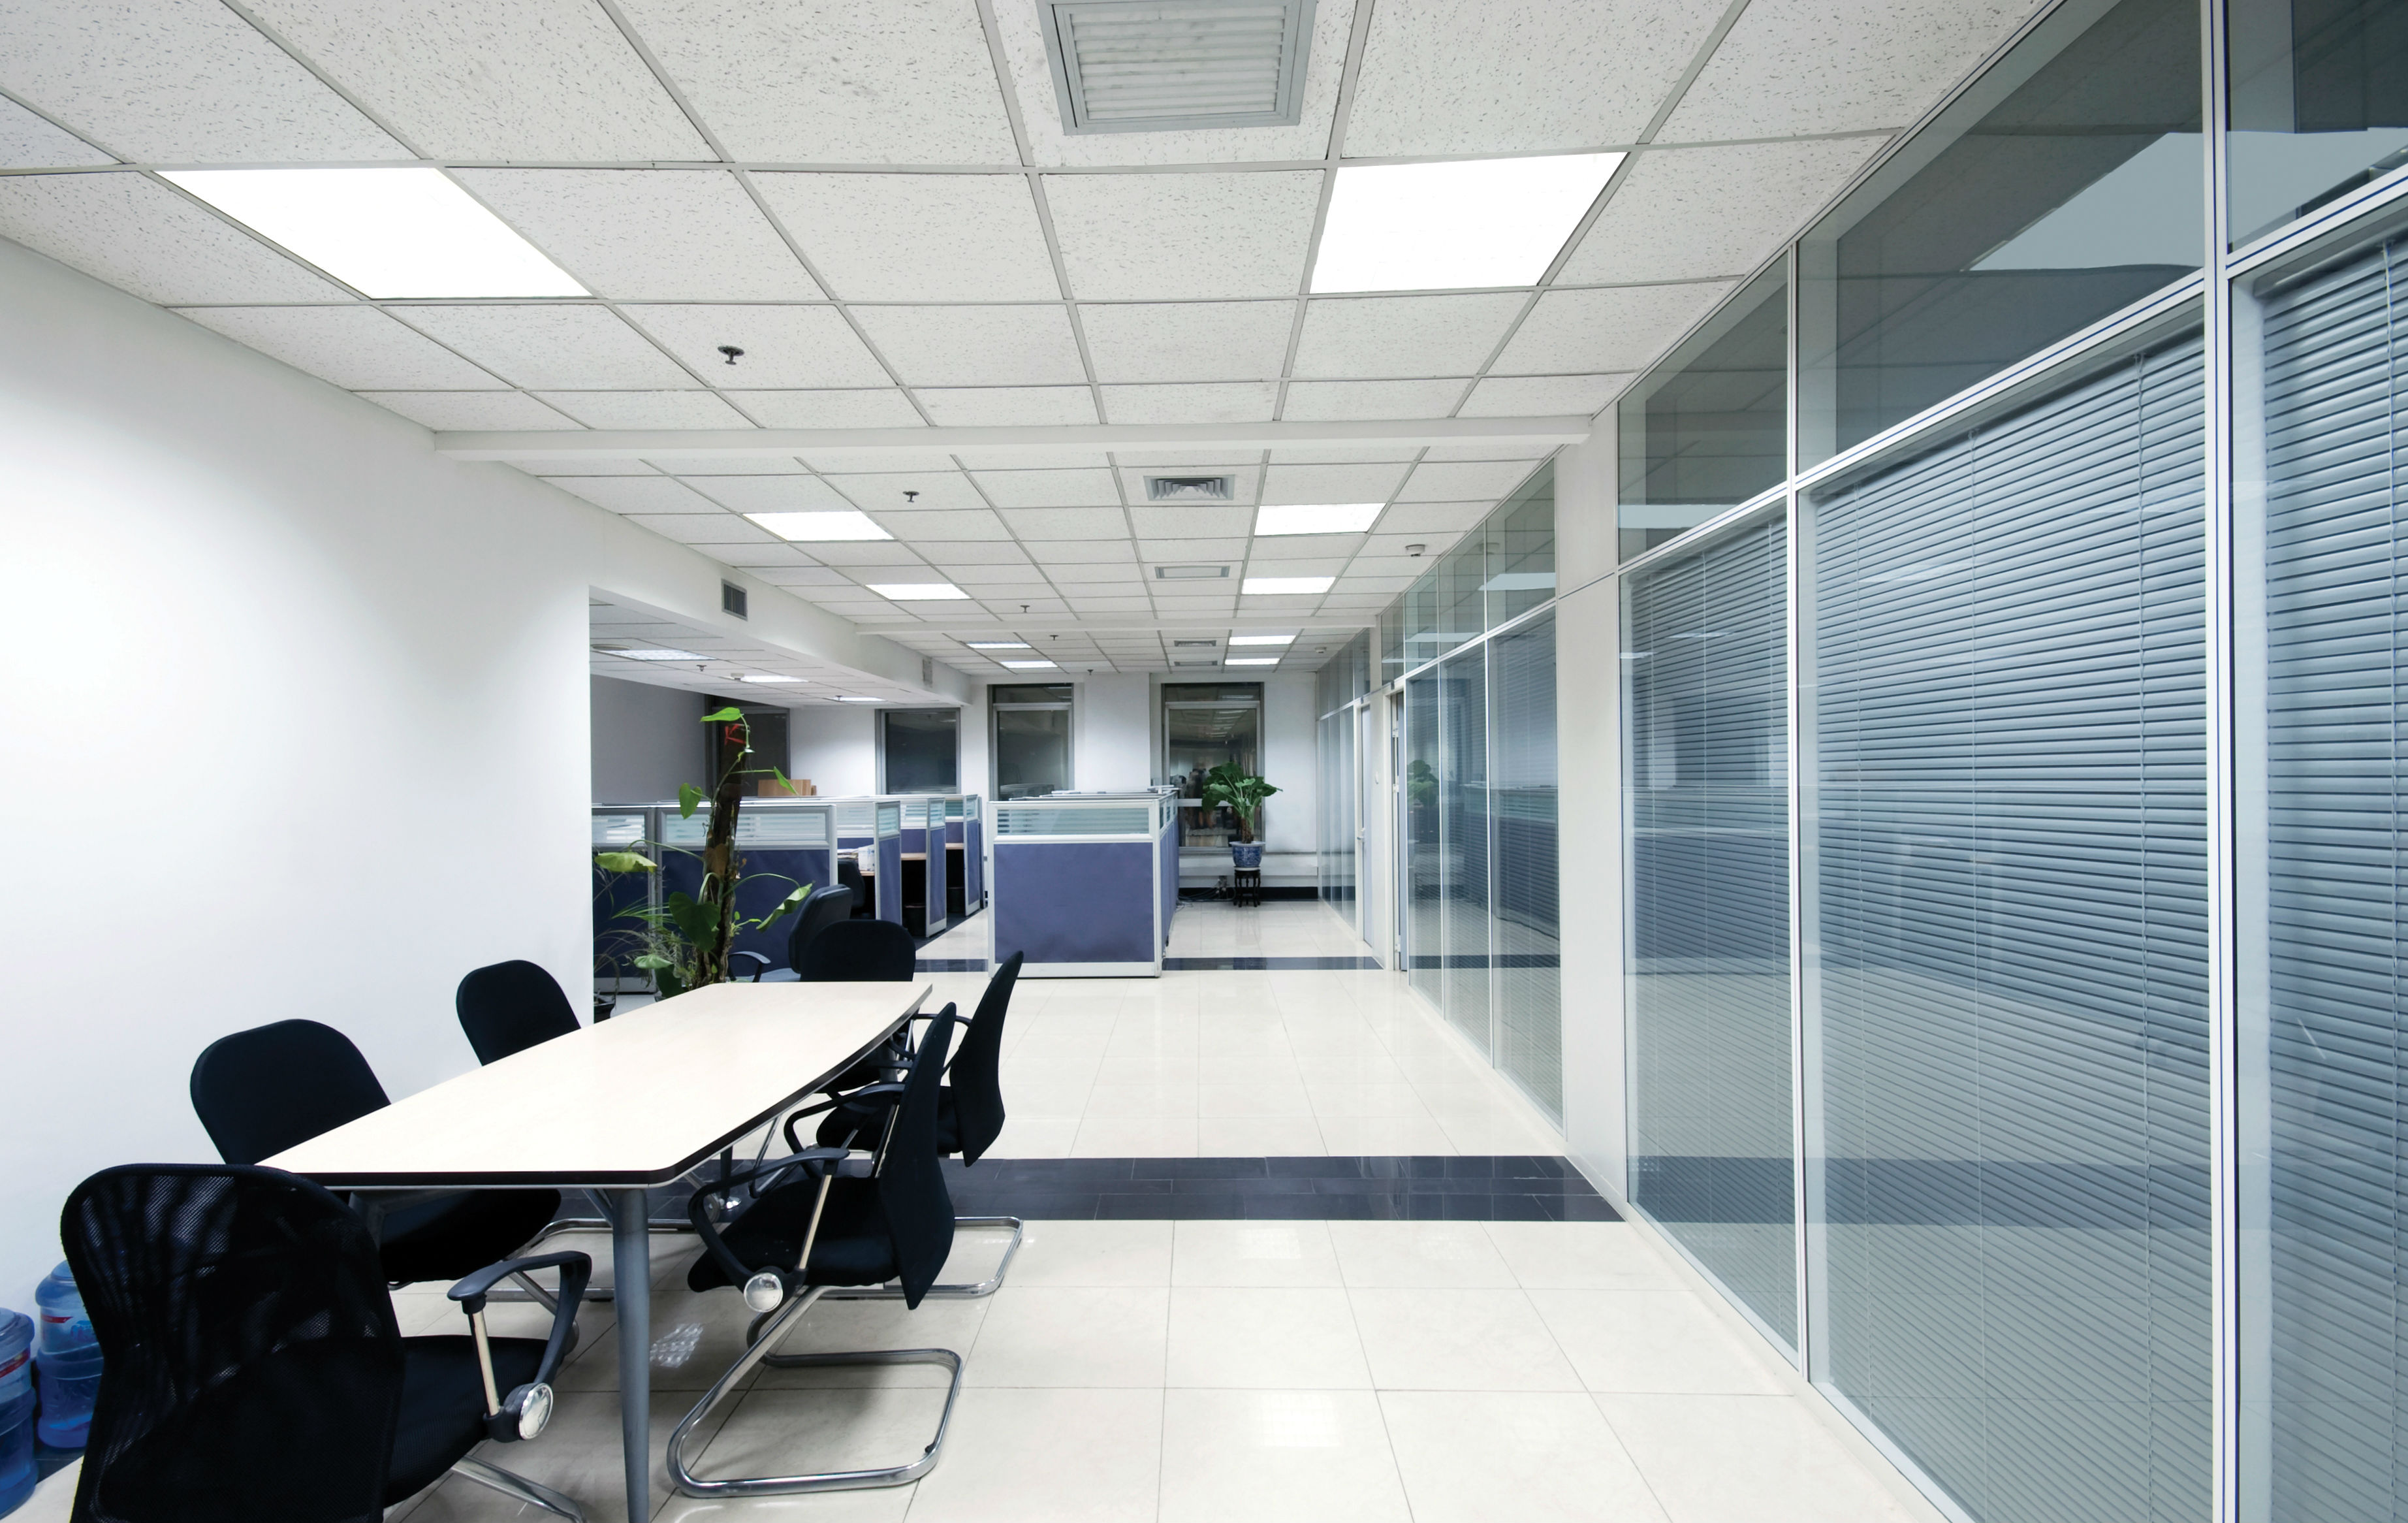 LED Ceiling Panel Light in Office Area